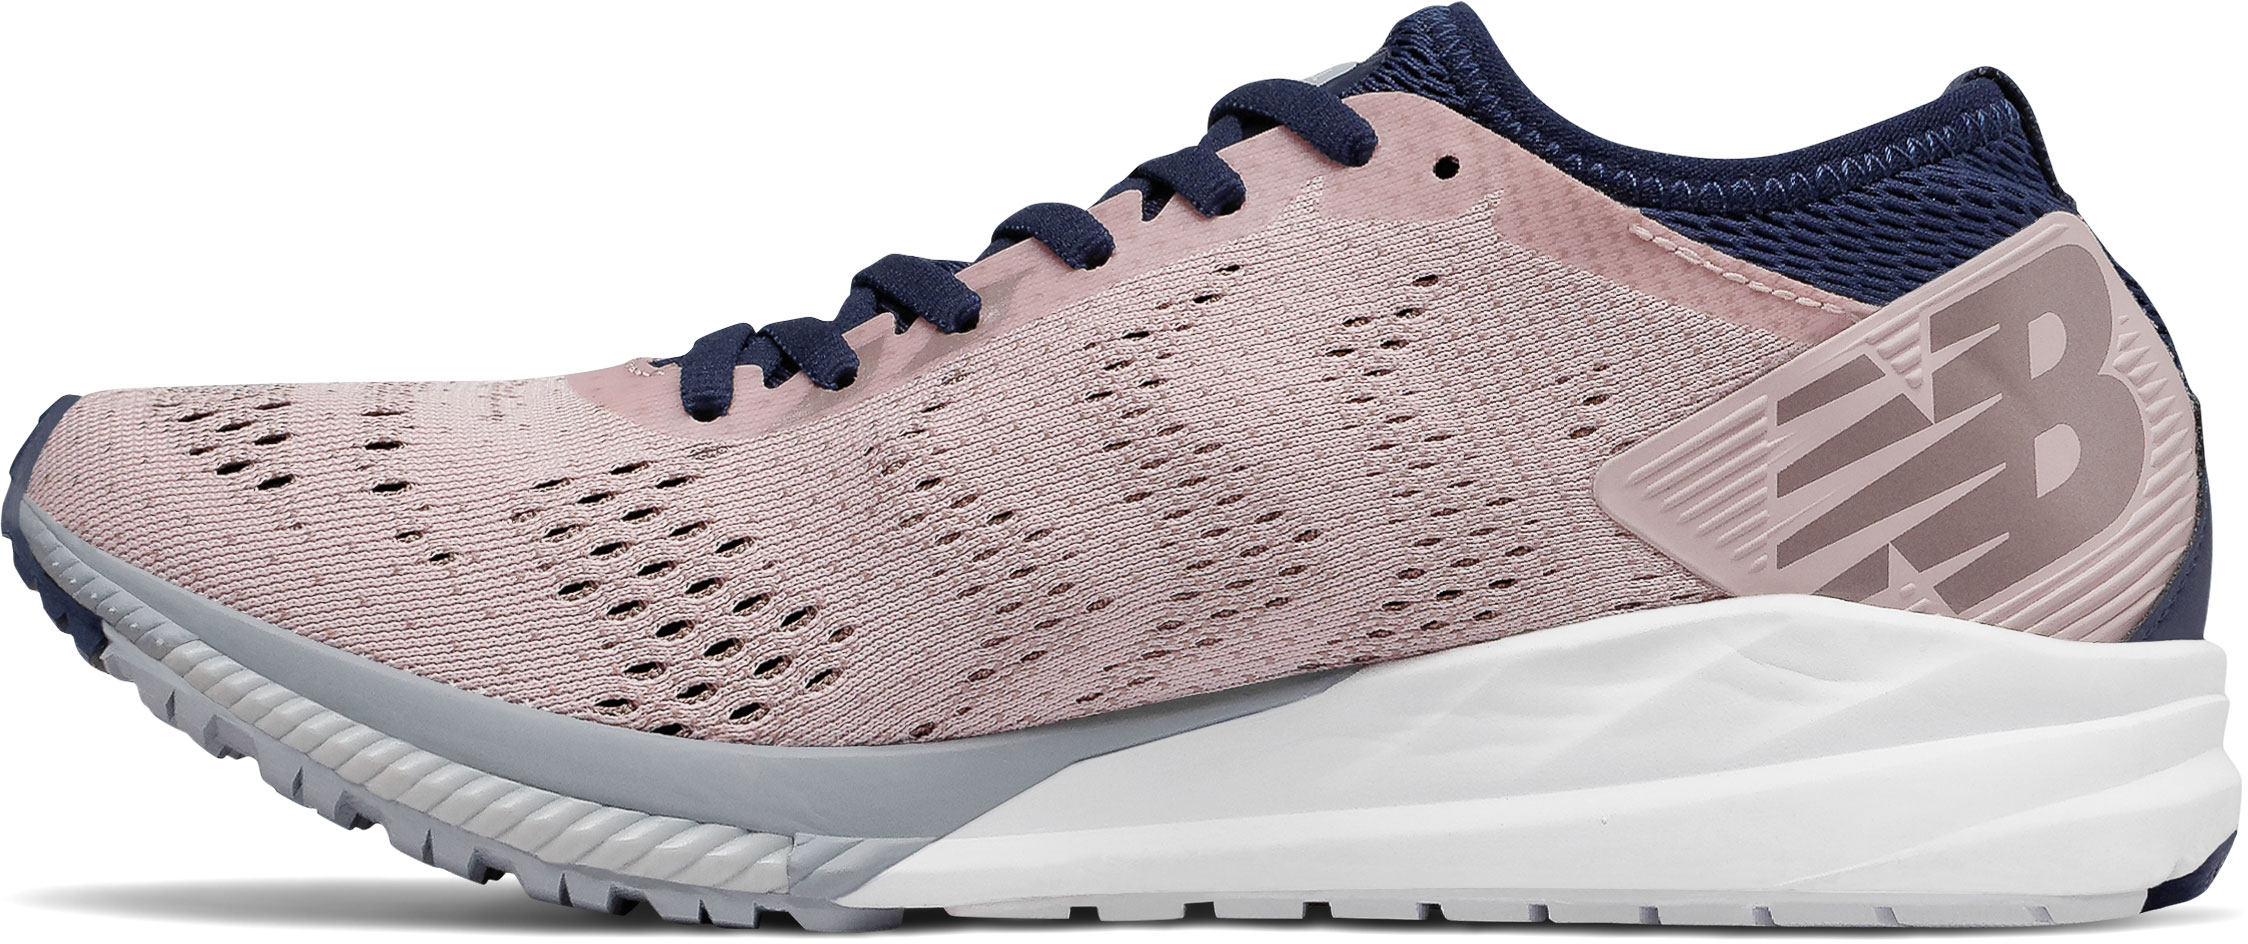 59c46682fb New Balance Women s FuelCell Impulse WFCIMPB Conch Shell-Light Cyclone ...